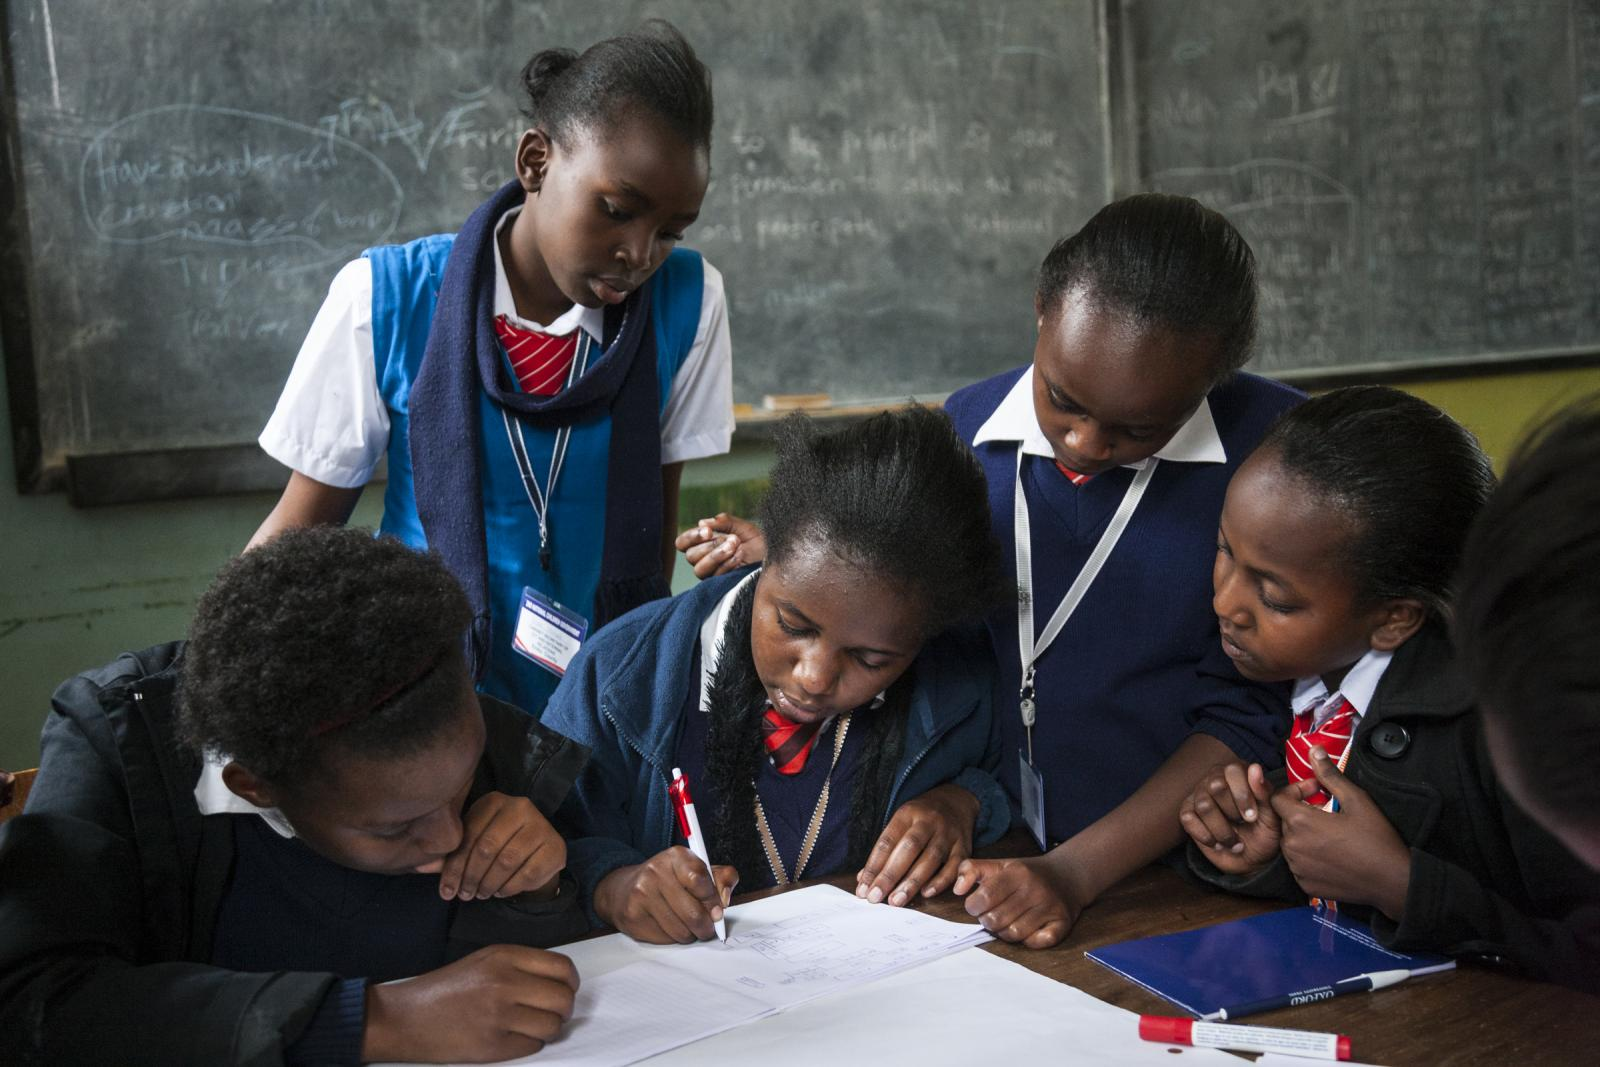 Students draw their school during the 2nd Annual National Children's Government Congress, Nairobi, Kenya, June 14, 2015. Photo: UNICEF/Adriane Ohanesian